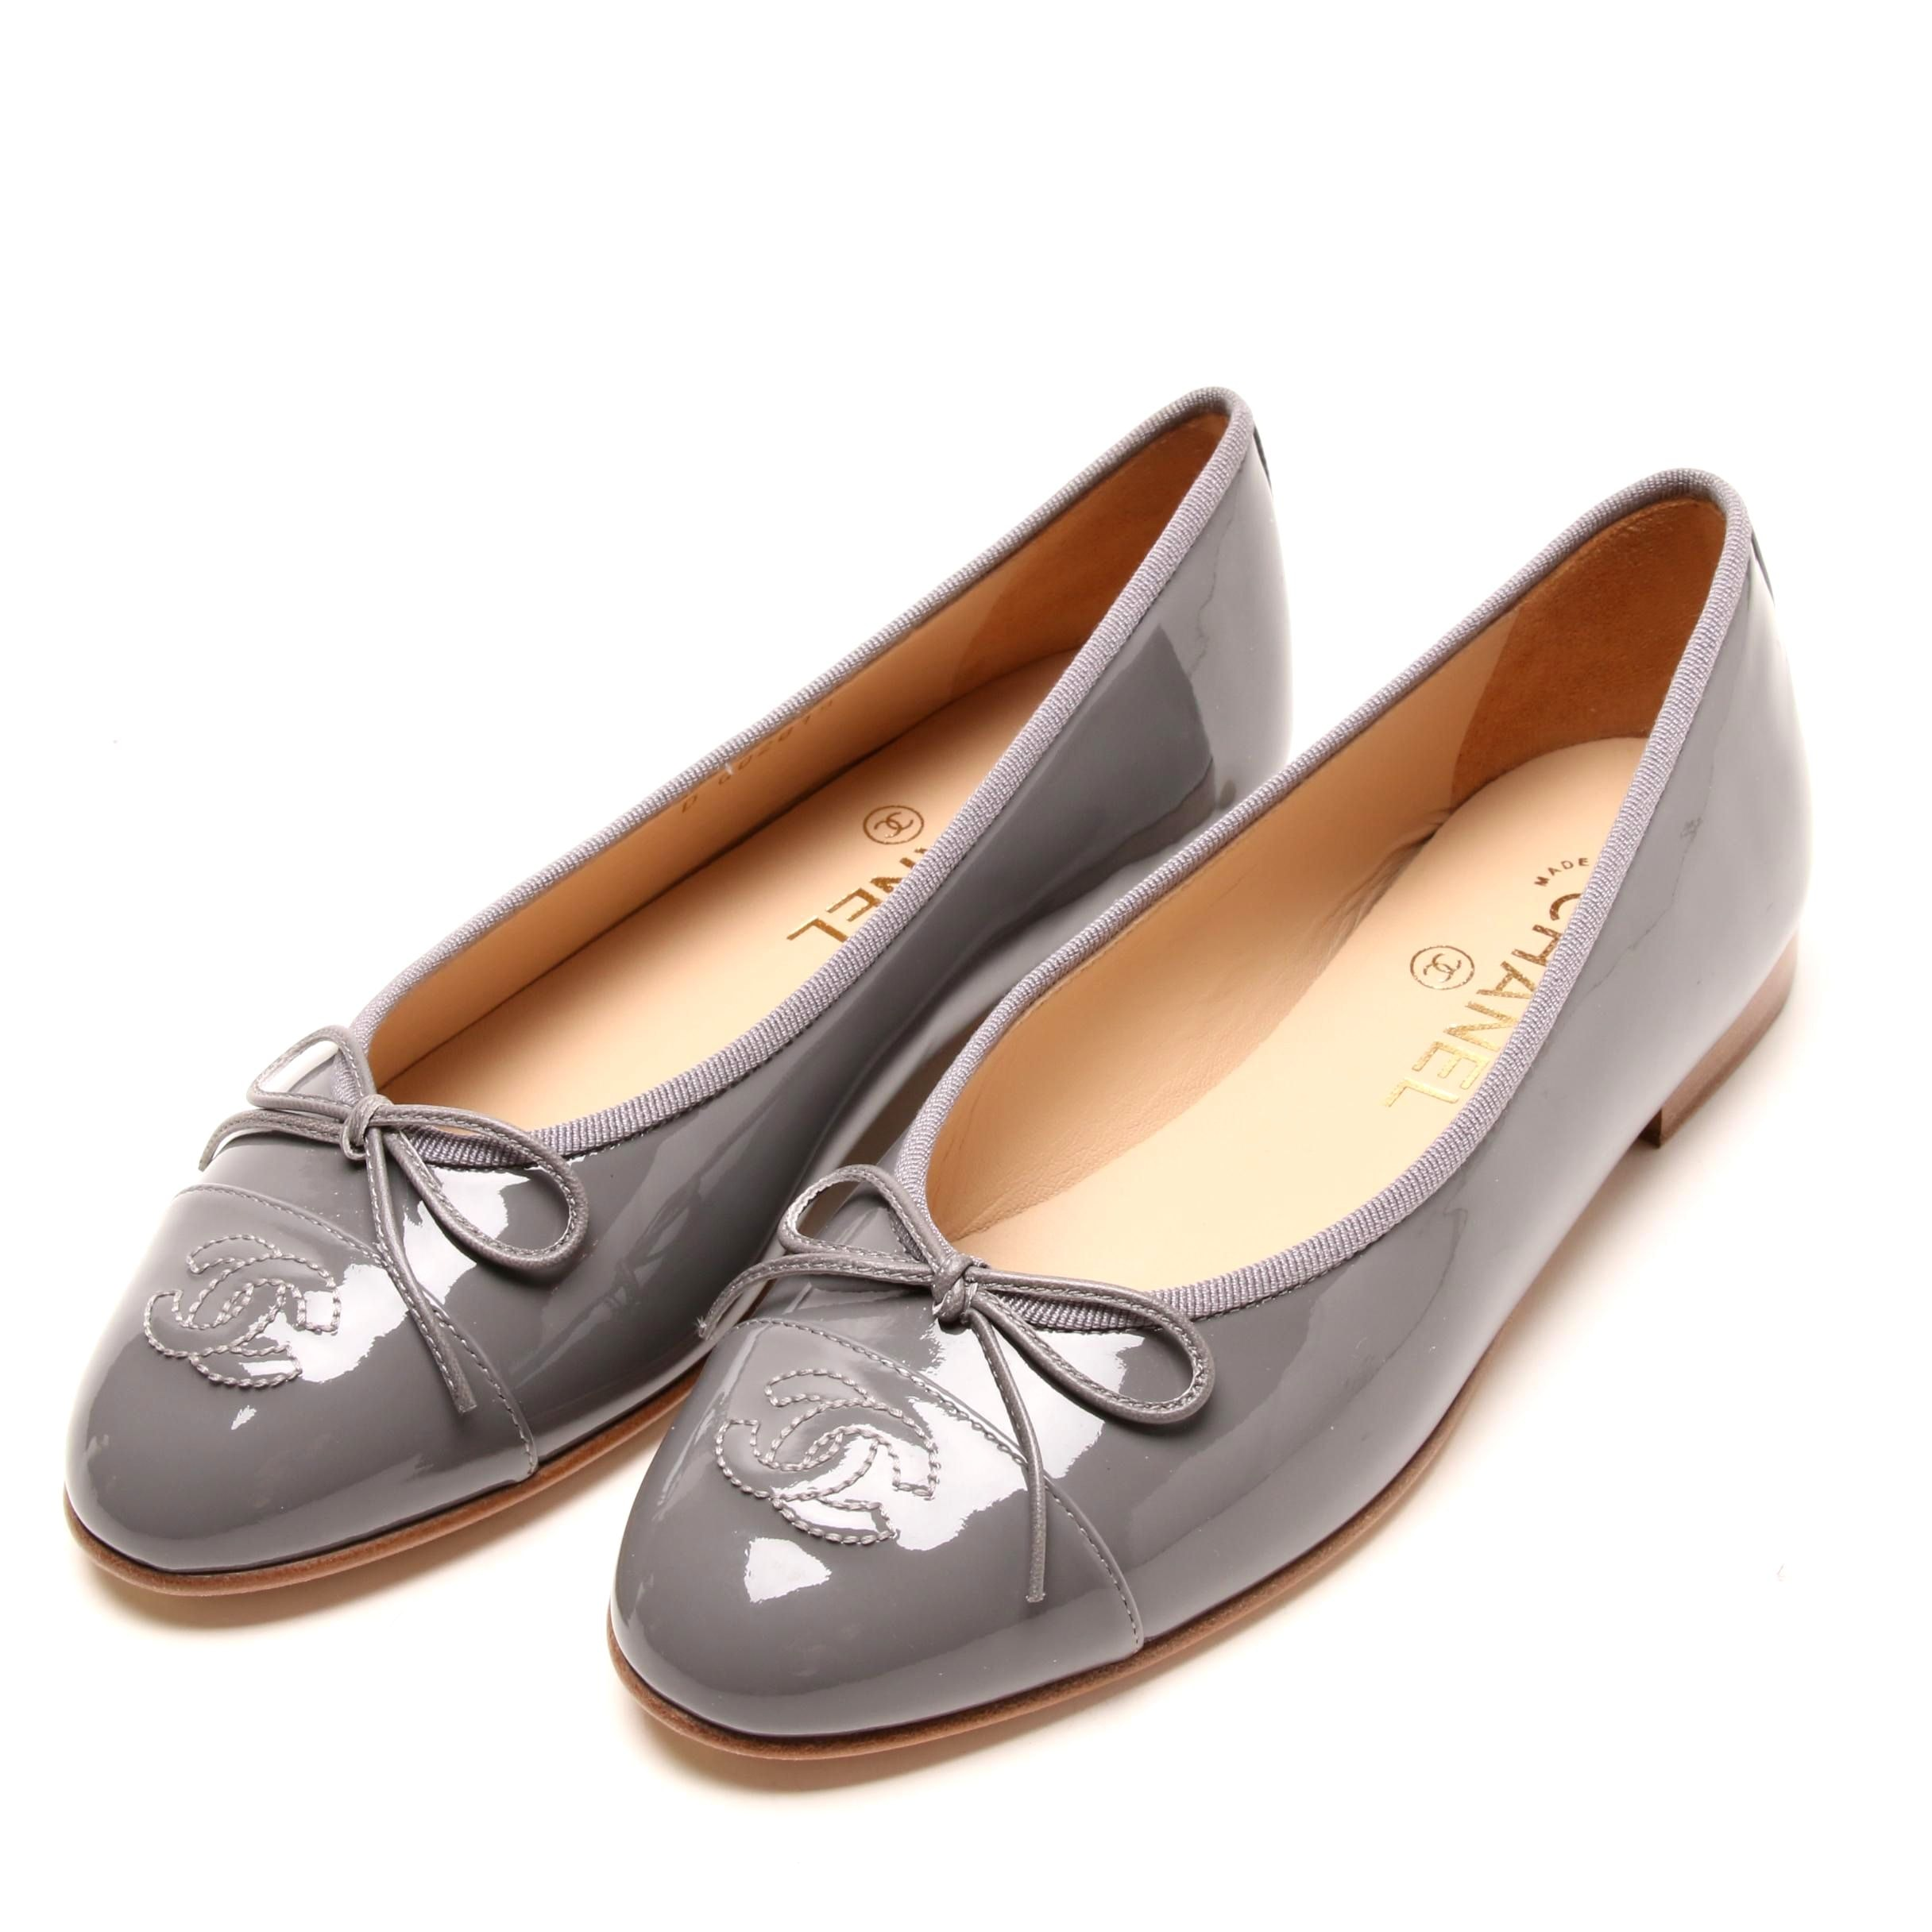 Chanel Gray Patent Leather Ballerina Flats